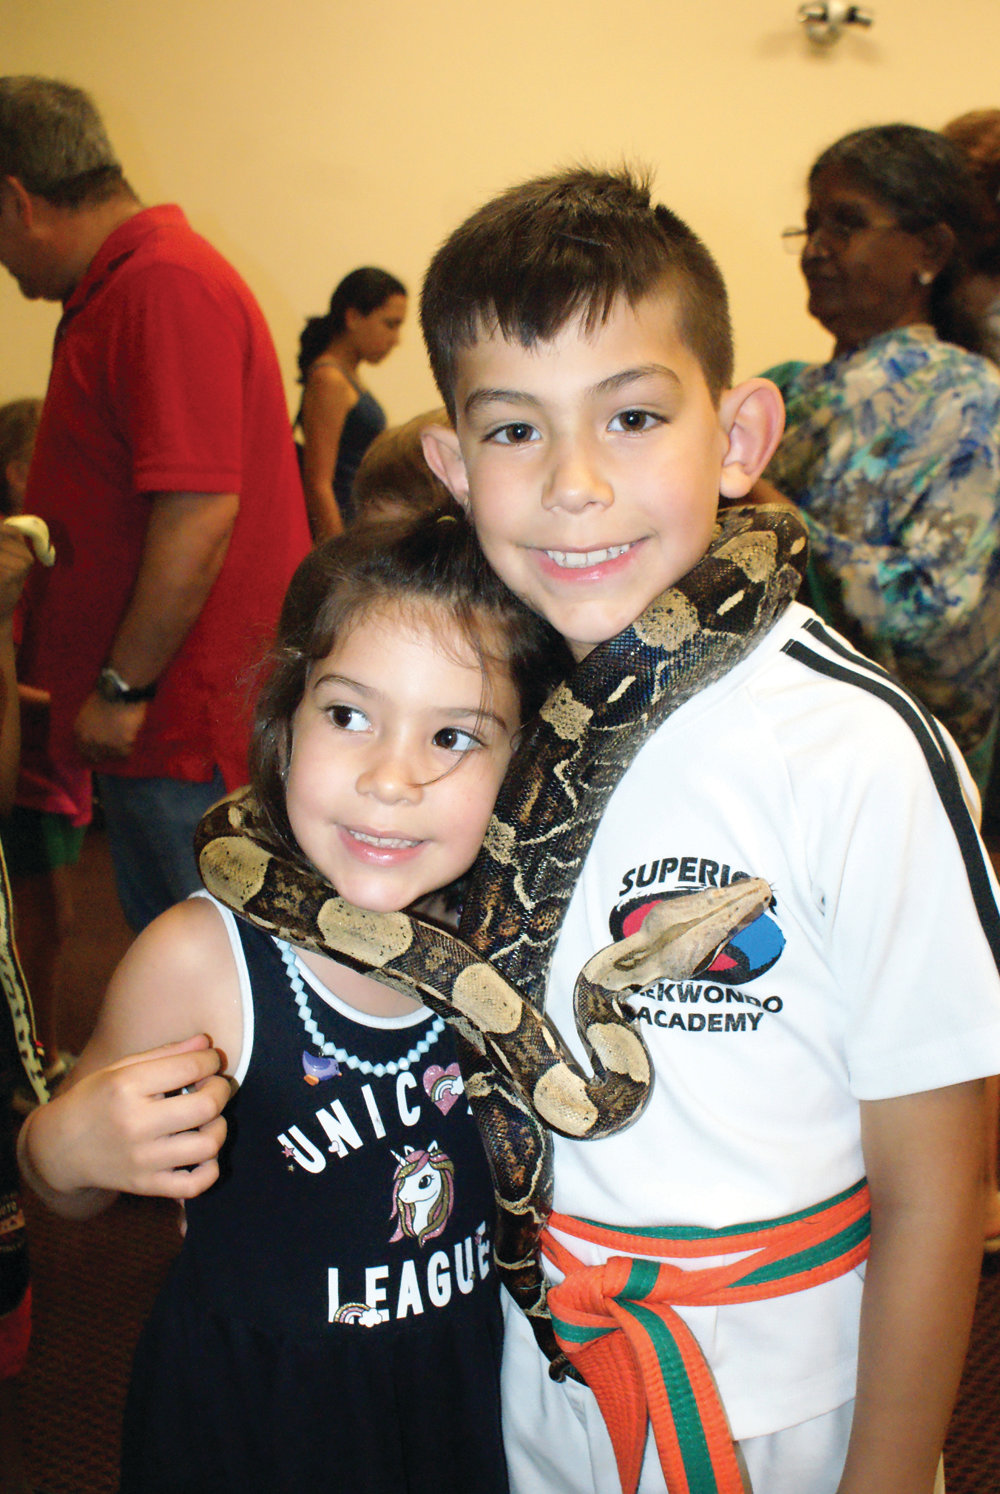 SIBLINGS AND SNAKE: Sharing an experience with Rollo, a boa constrictor, were the McGee siblings – Isle, 6, and Declan, 8.